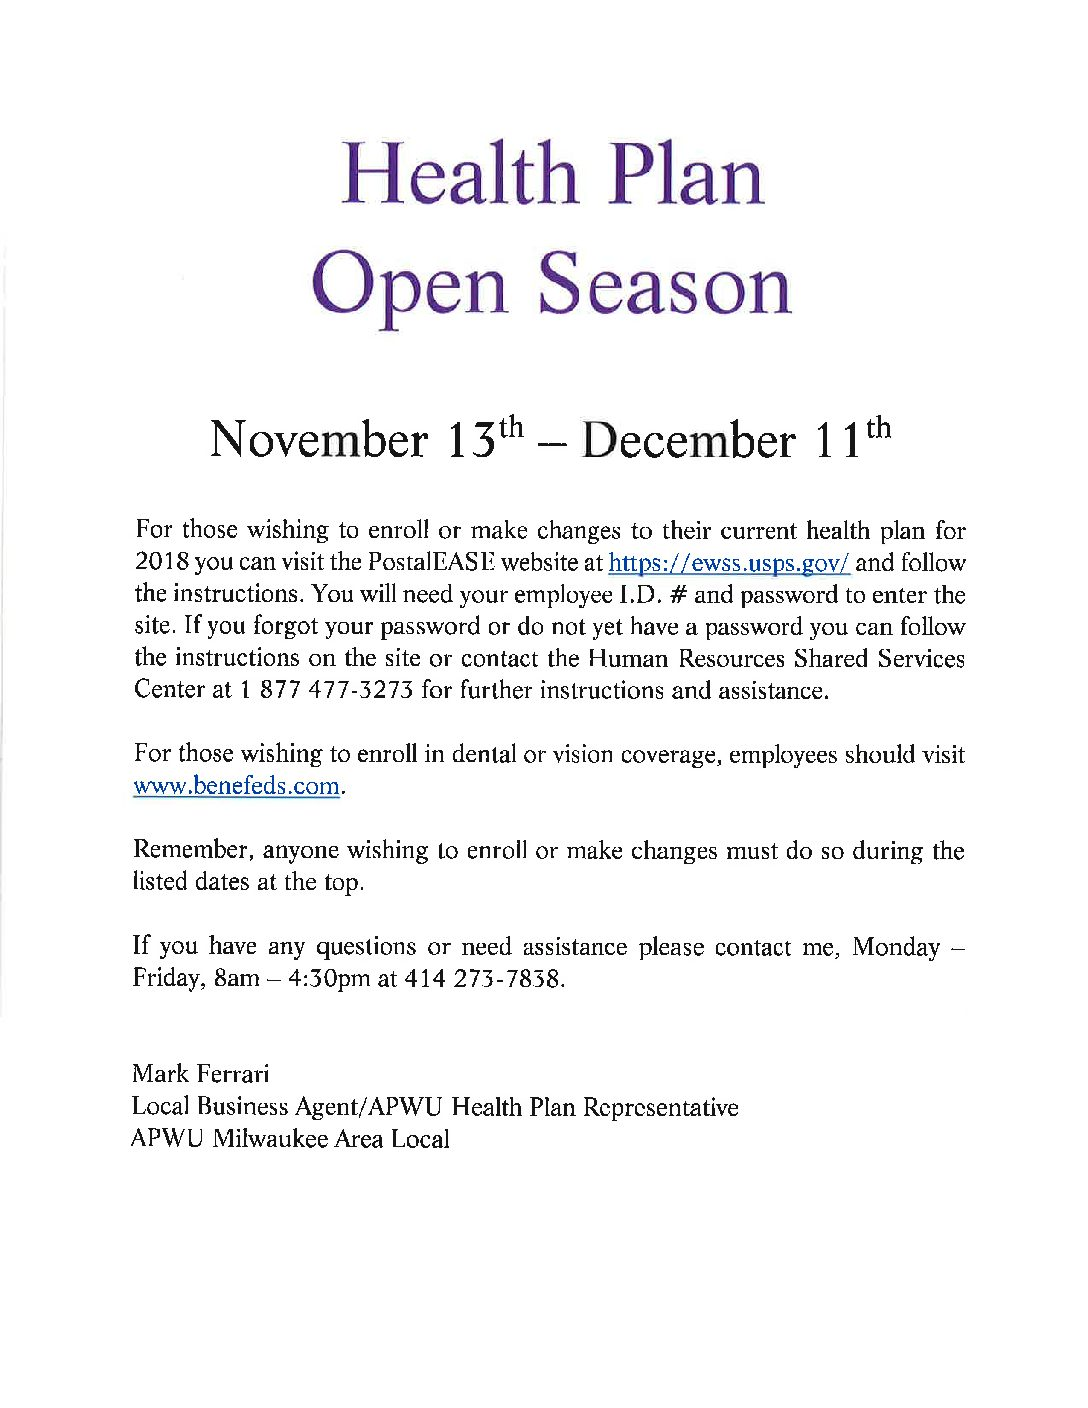 Health Plan Open Season